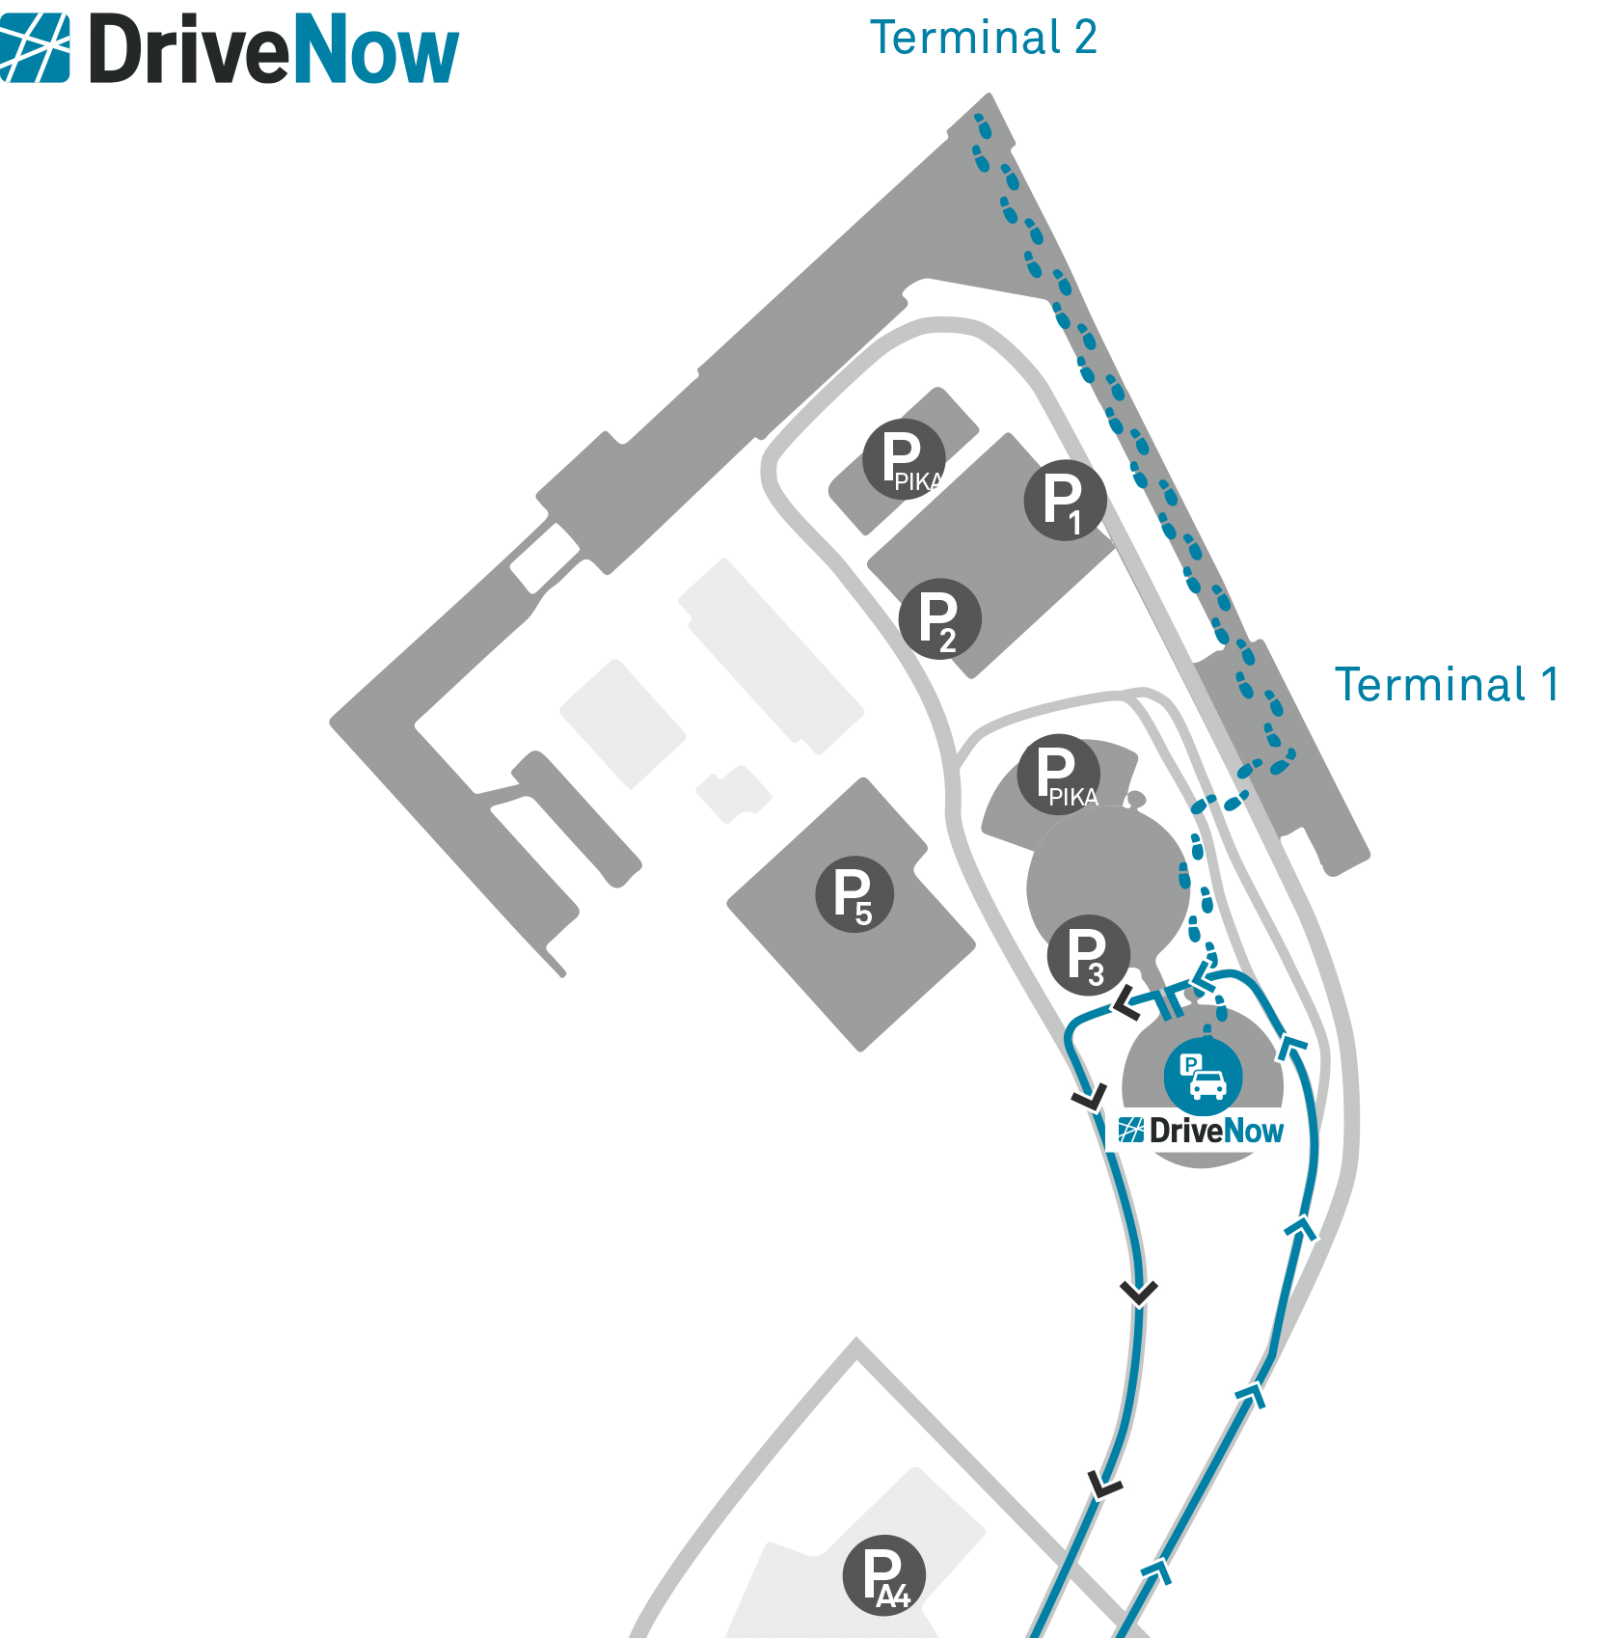 DriveNow_car_sharing_helsinki_airport_map